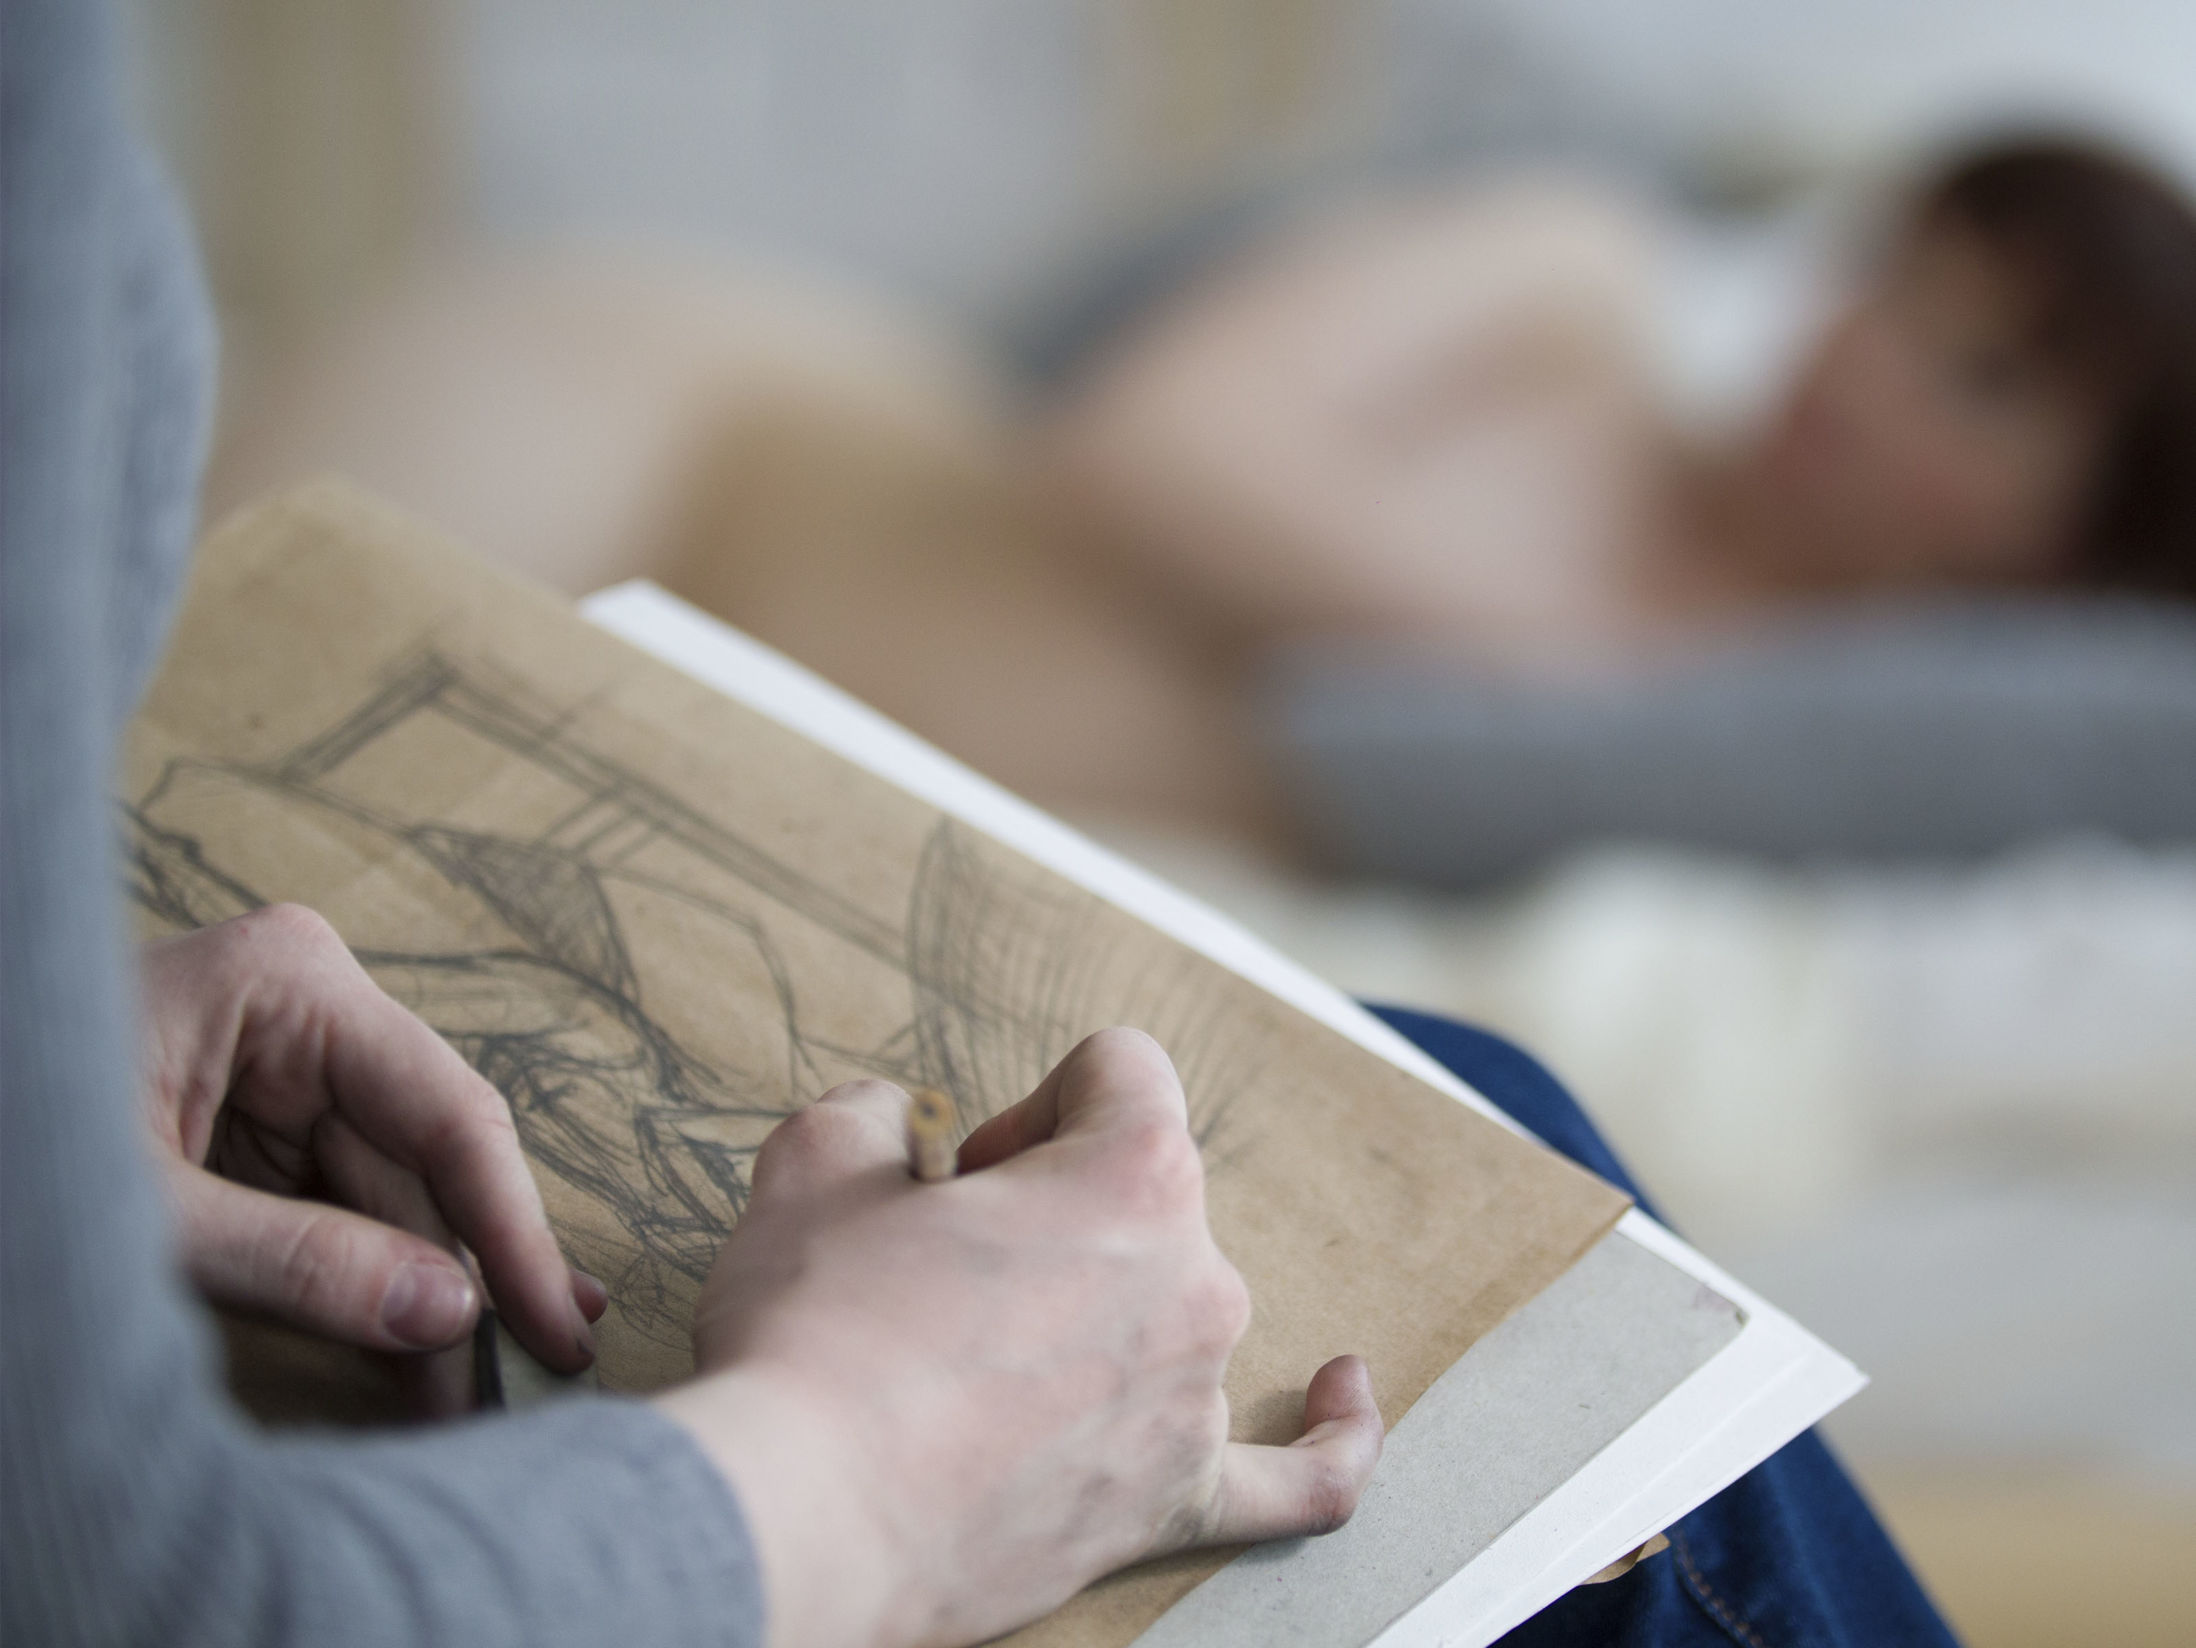 Life Drawing Art Venue Classes in Manchester - Nexus Art Cafe